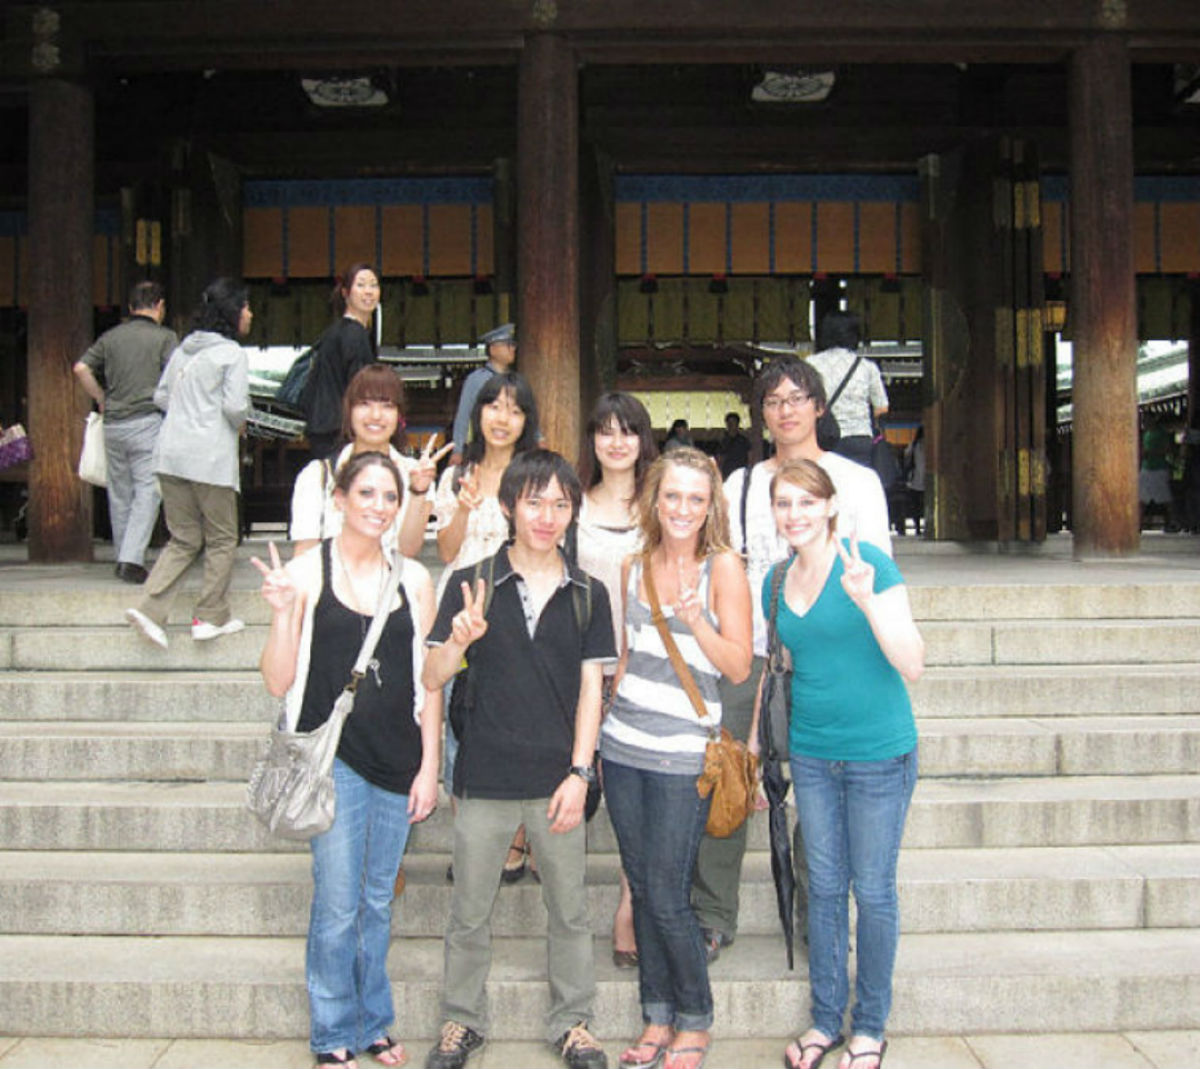 Japan AGU - Students in front of building-u